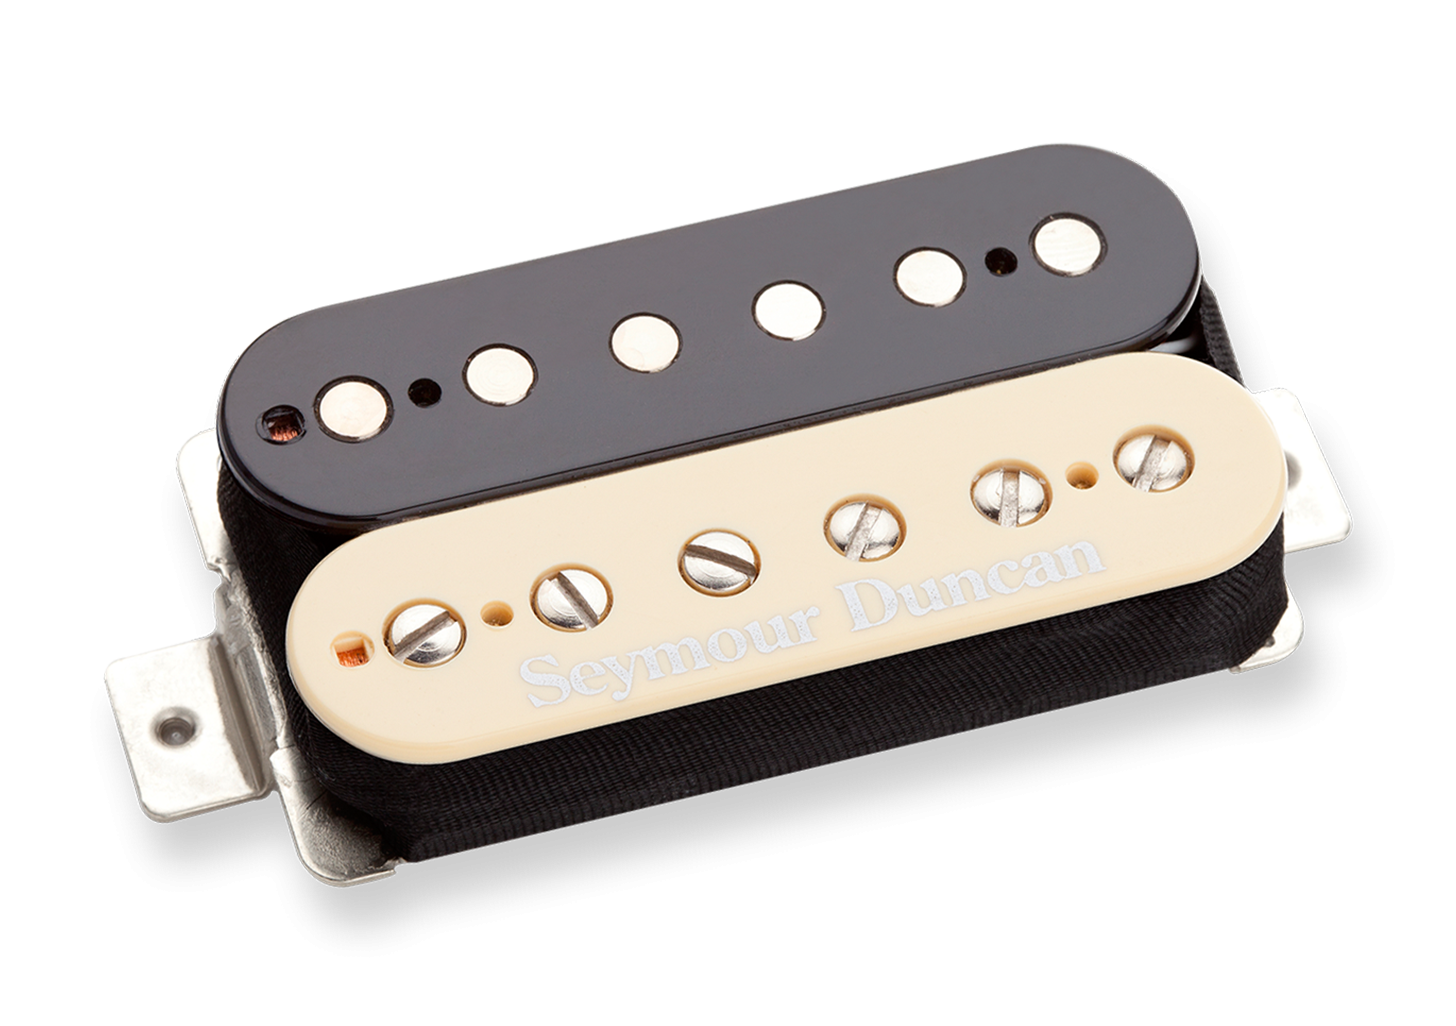 Seymour Duncan Alternative 8 Humbucker - SH-15 Zebra